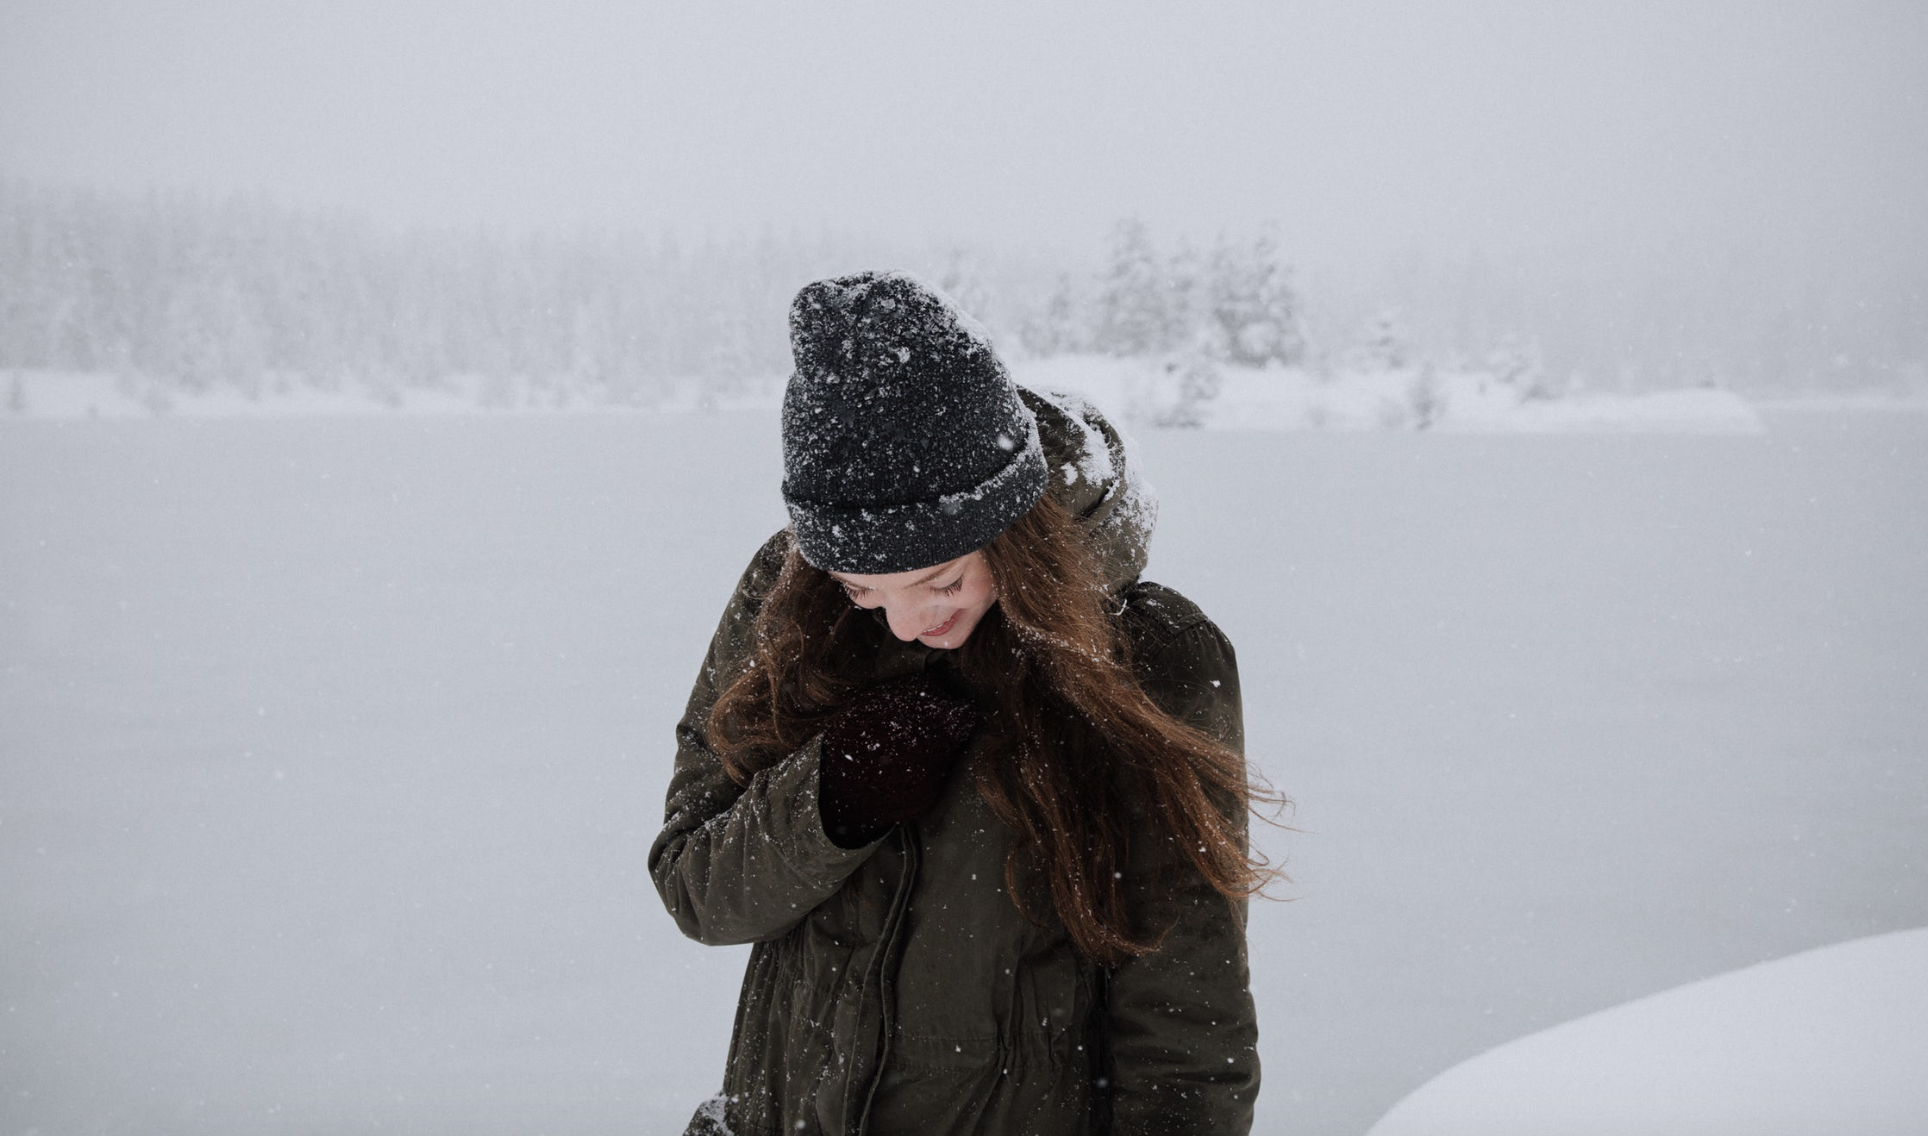 Winter dry skin? Dr. Irwin shares how to fix it on SkinTour skin care blog